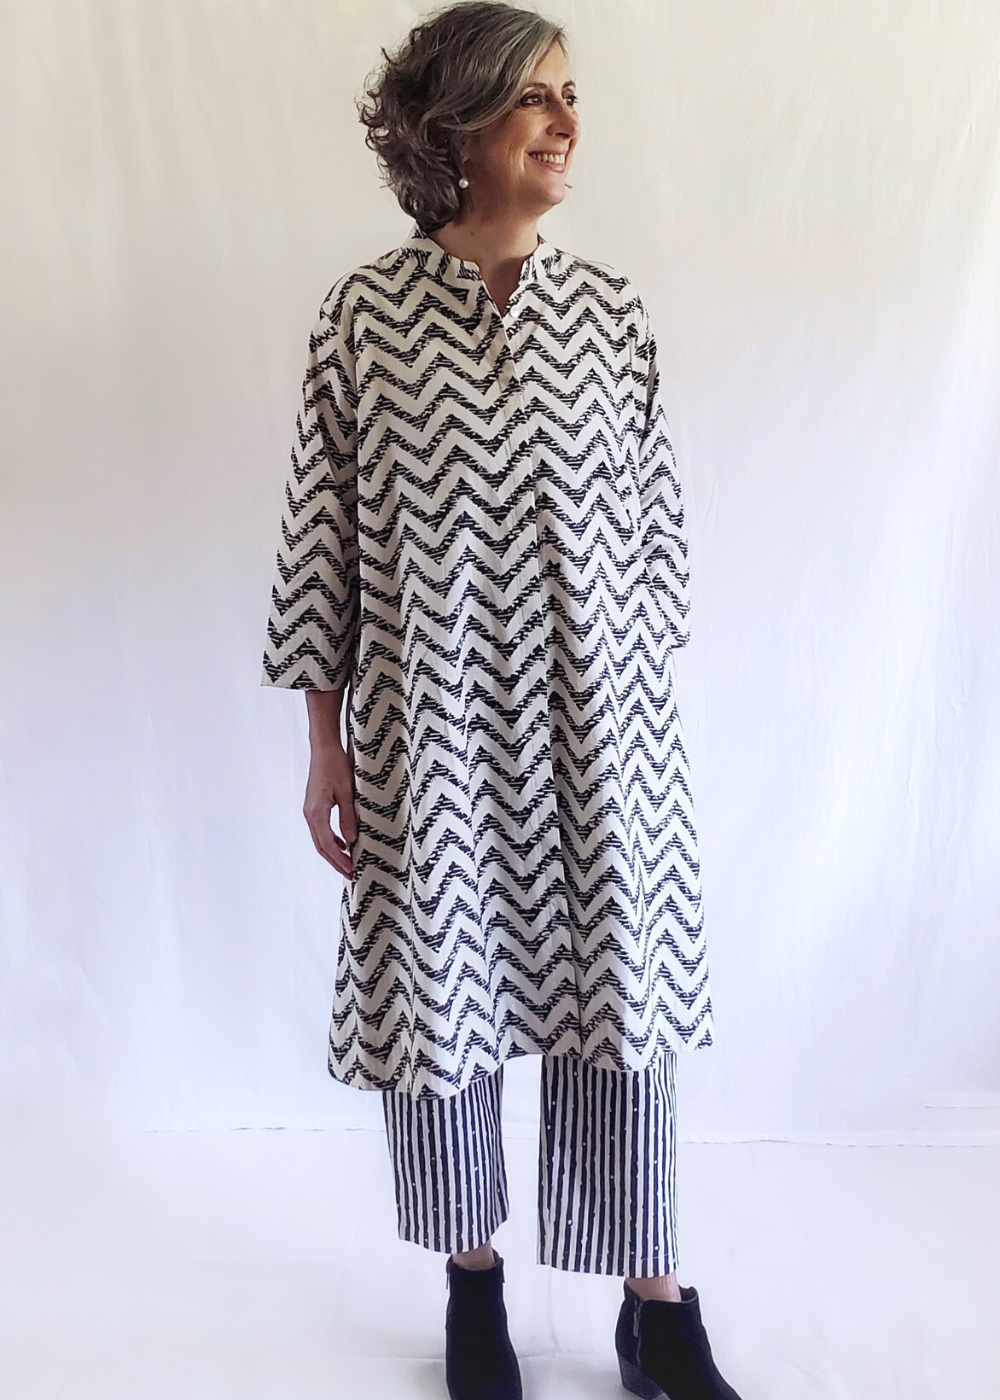 ISABELLA DRESS in Black Zig Zag